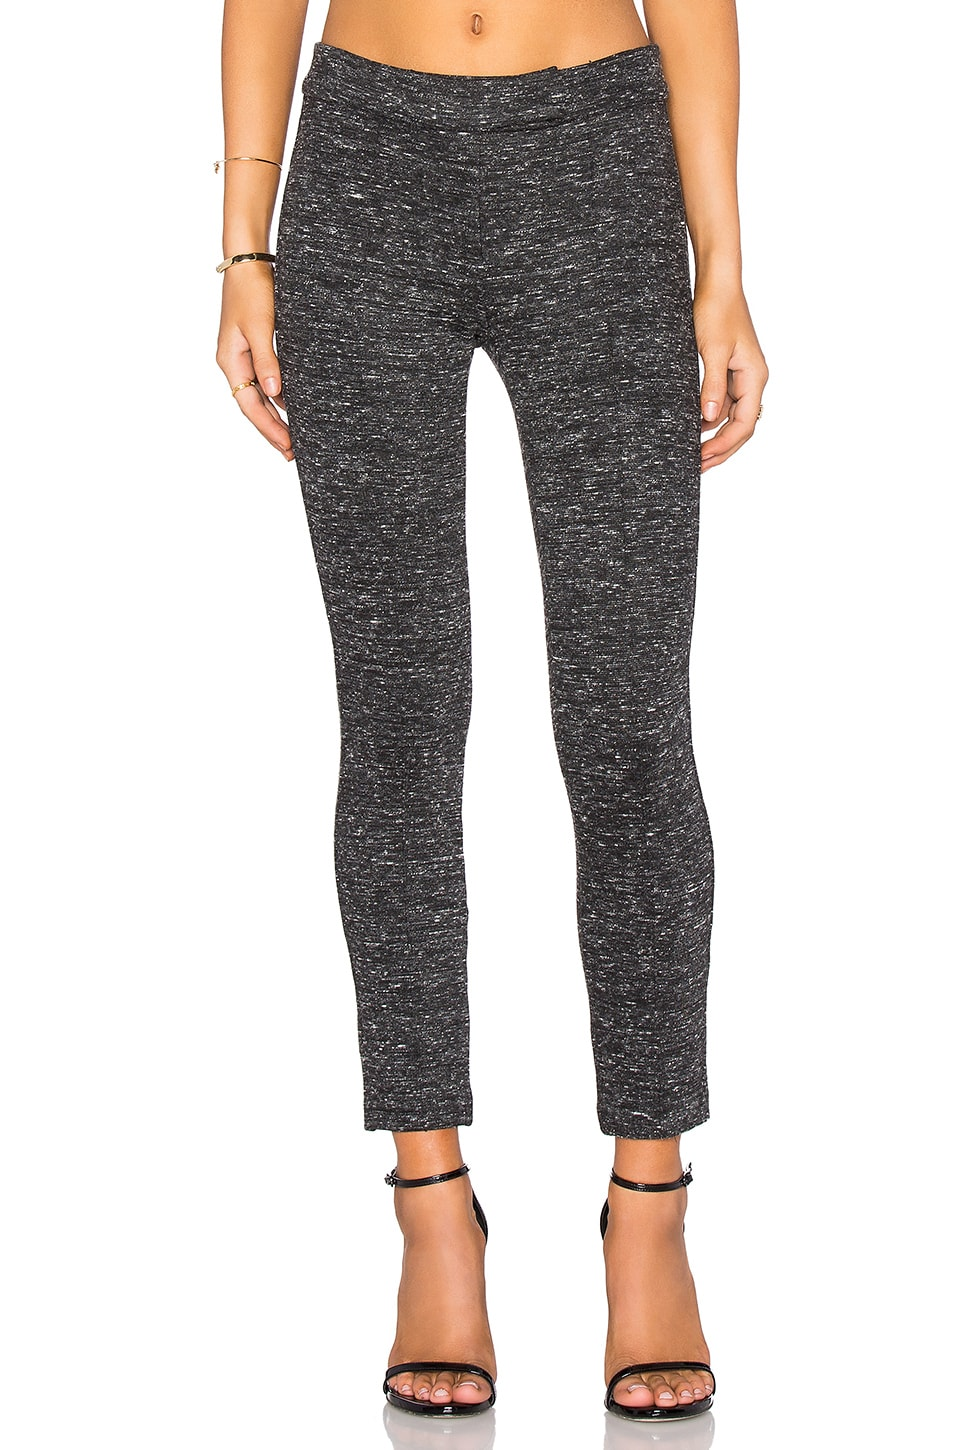 Pin Tuck Pant by Gettingbacktosquareone